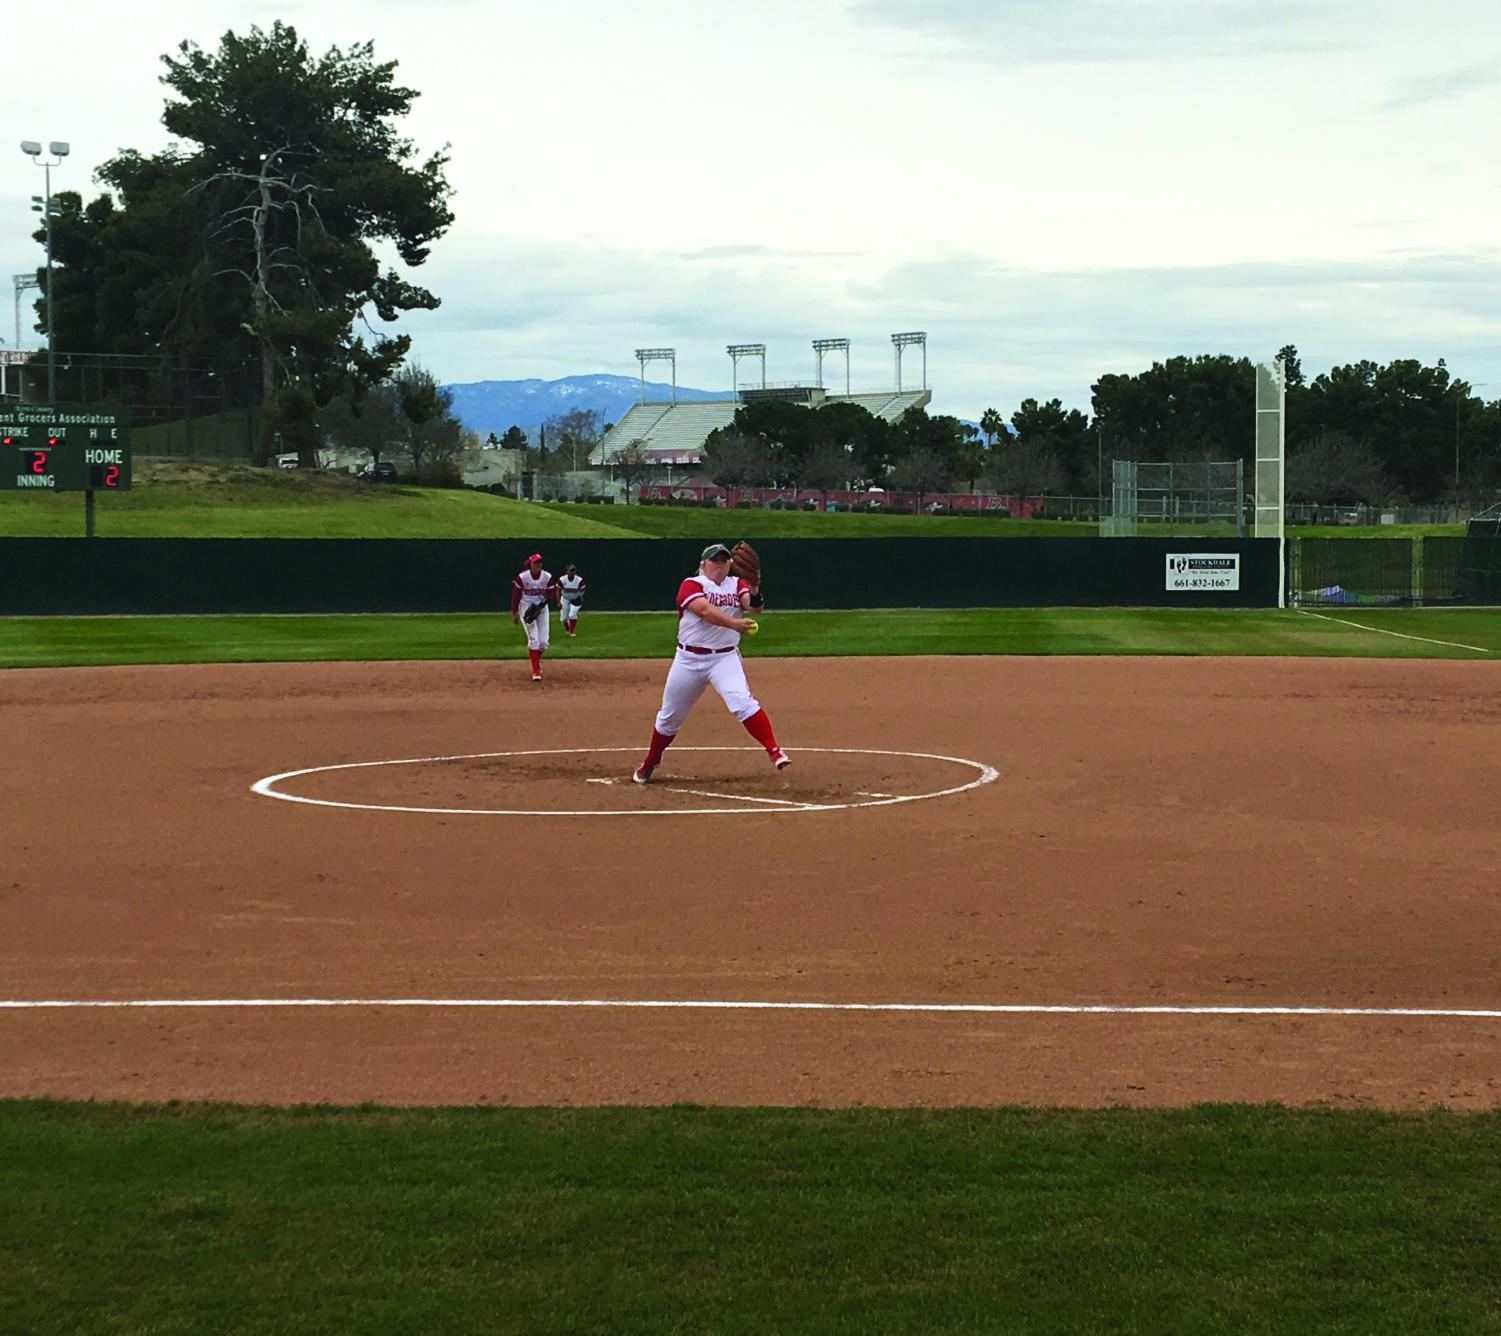 Bakersfield College pitcher Kylee Fahy warming up on the mound in their game against Cuesta College on March 20.